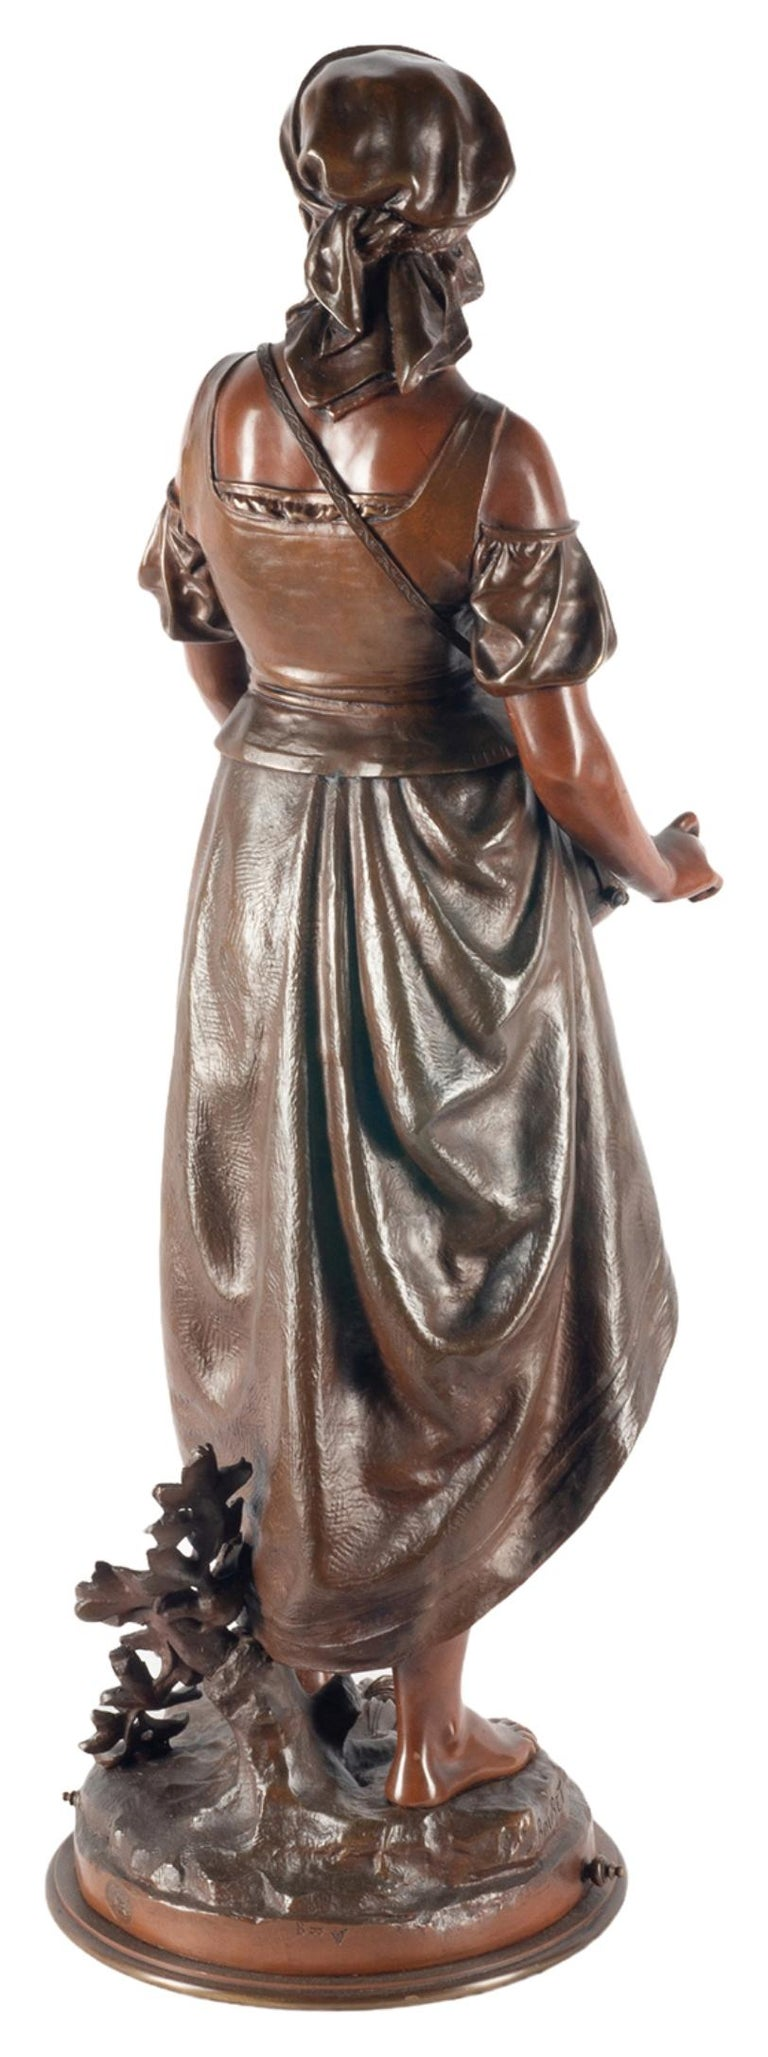 19th Century Eutrope Bouret Bronze Statue of Gypsy Girl Musician For Sale